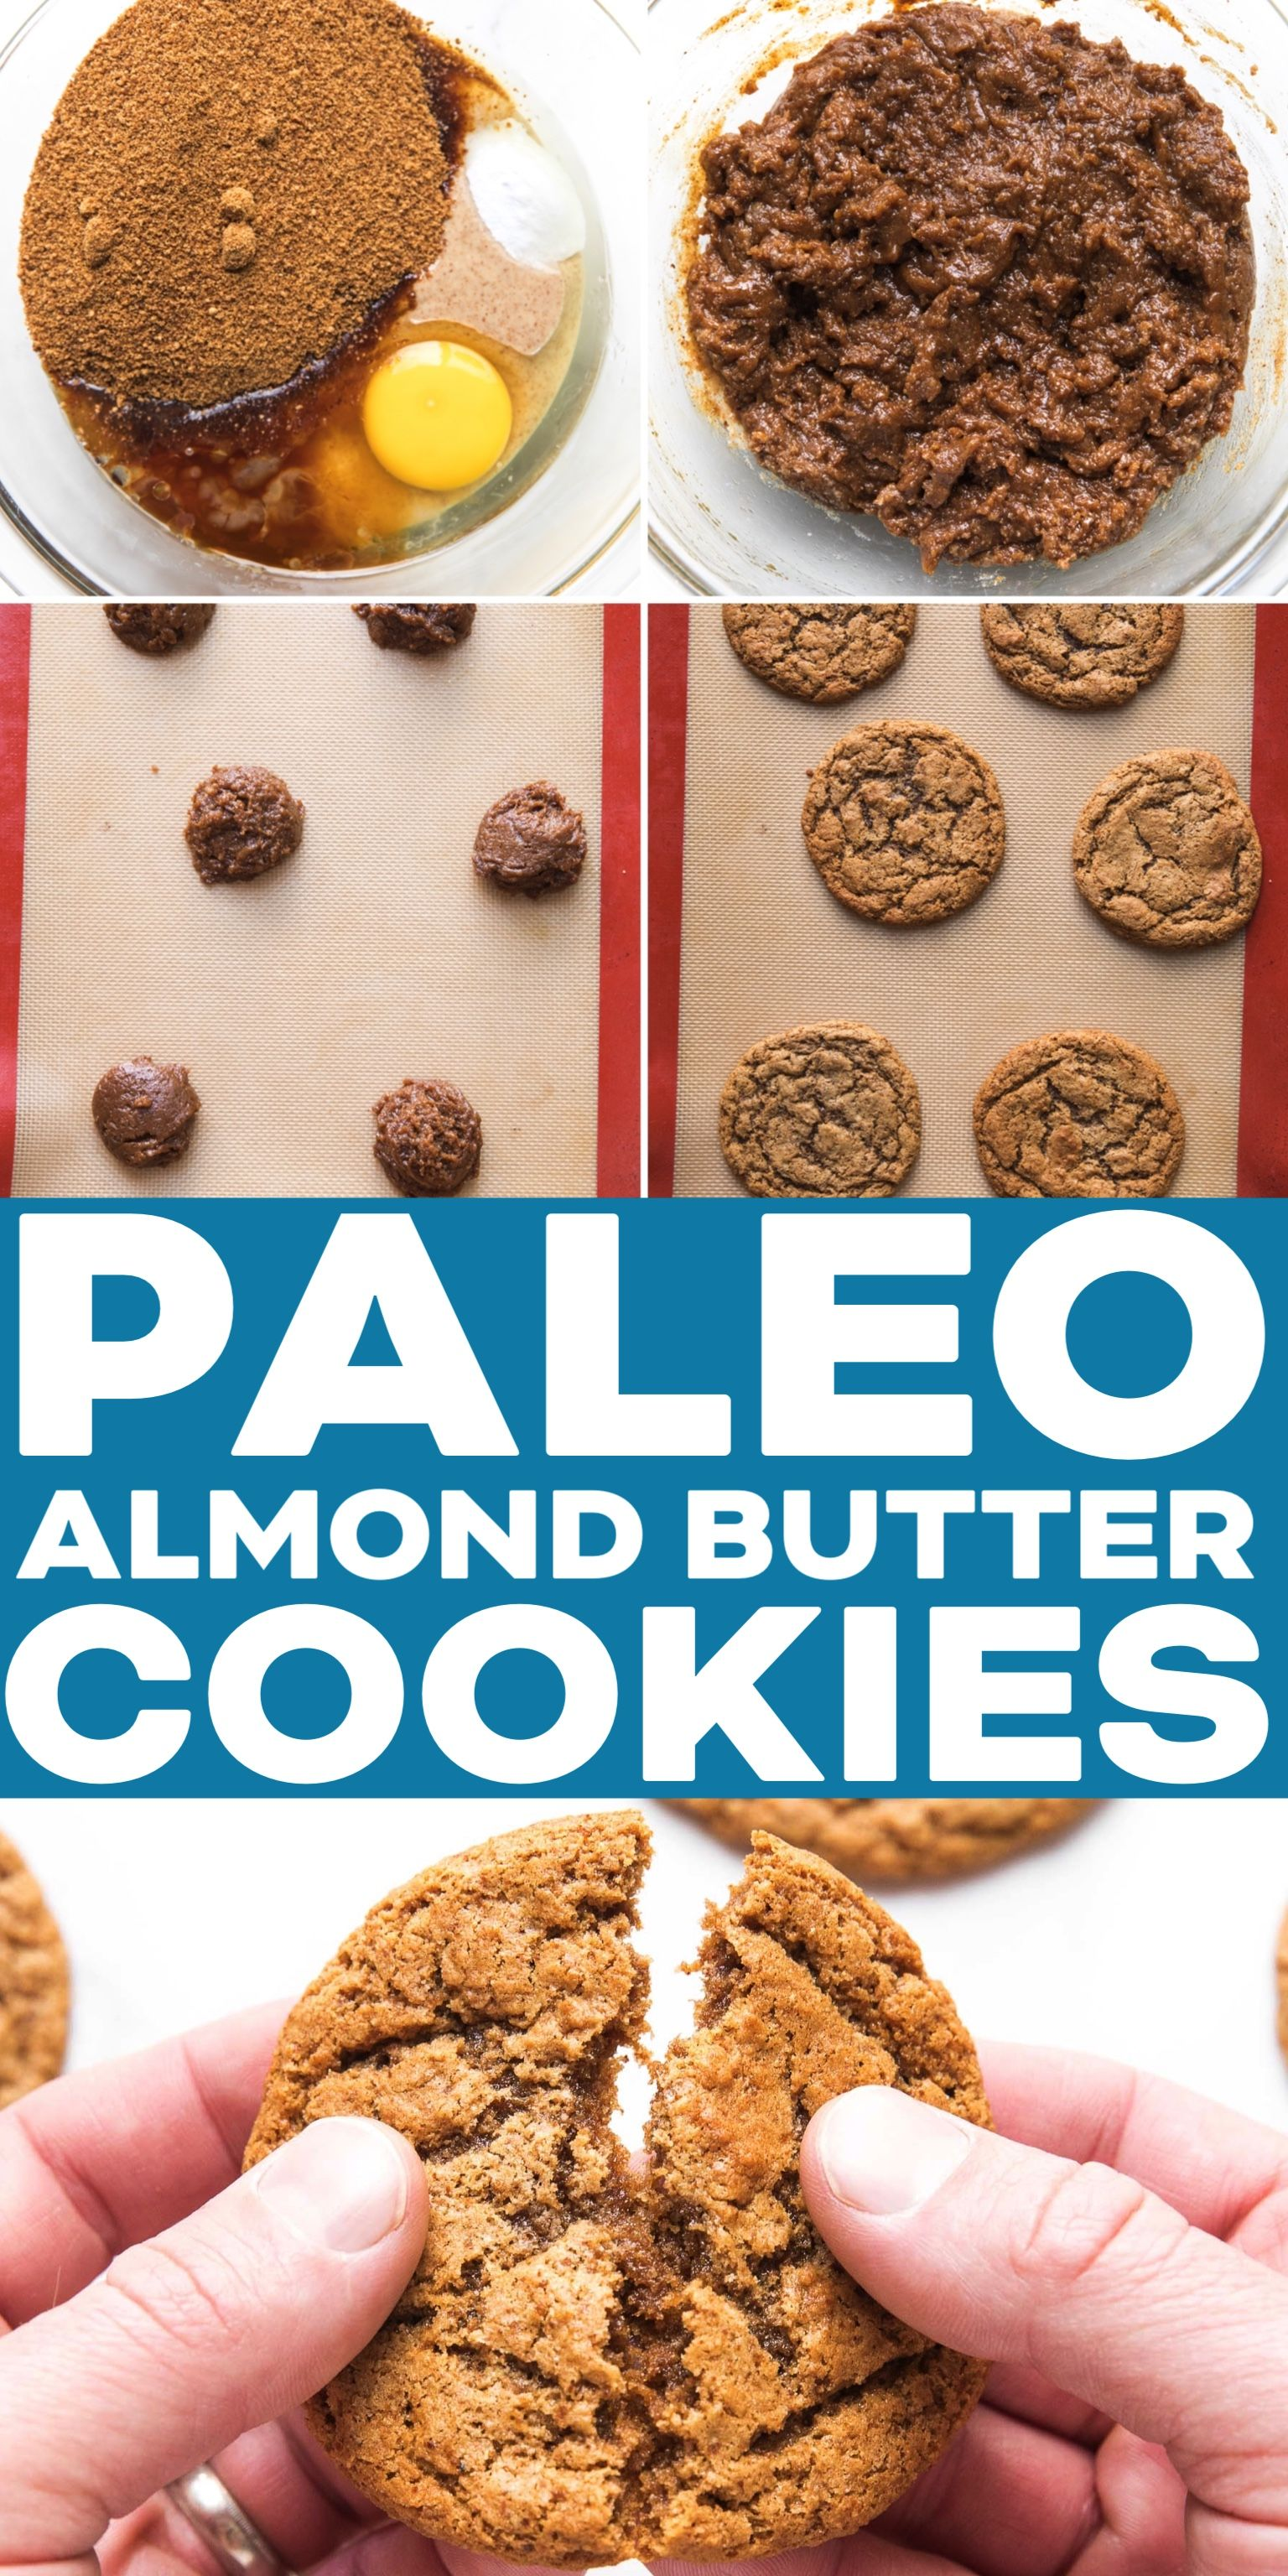 Paleo Almond Butter Cookies Recipe Video Just 5 Ingredients 1